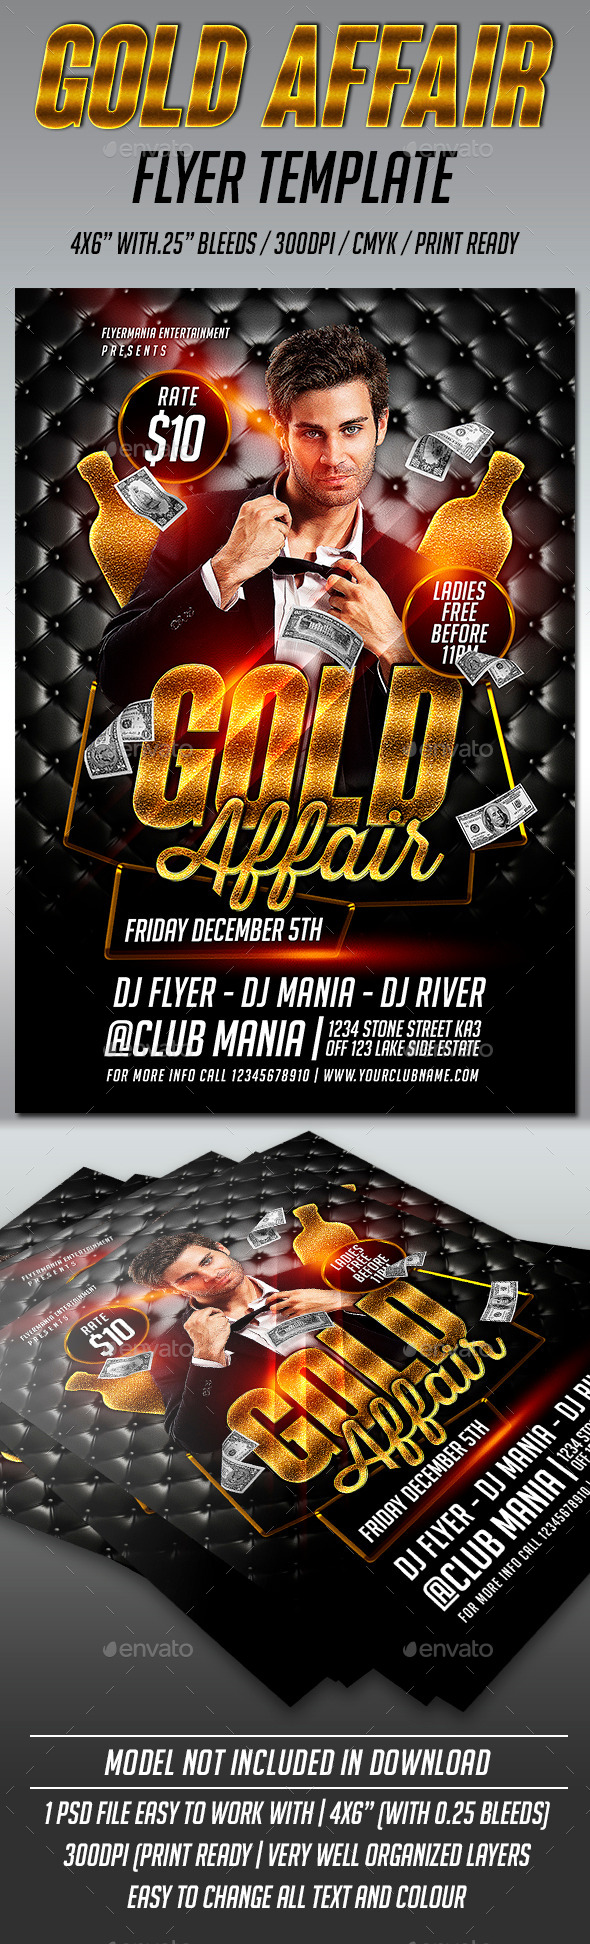 Gold Affair Flyer Template  - Clubs & Parties Events